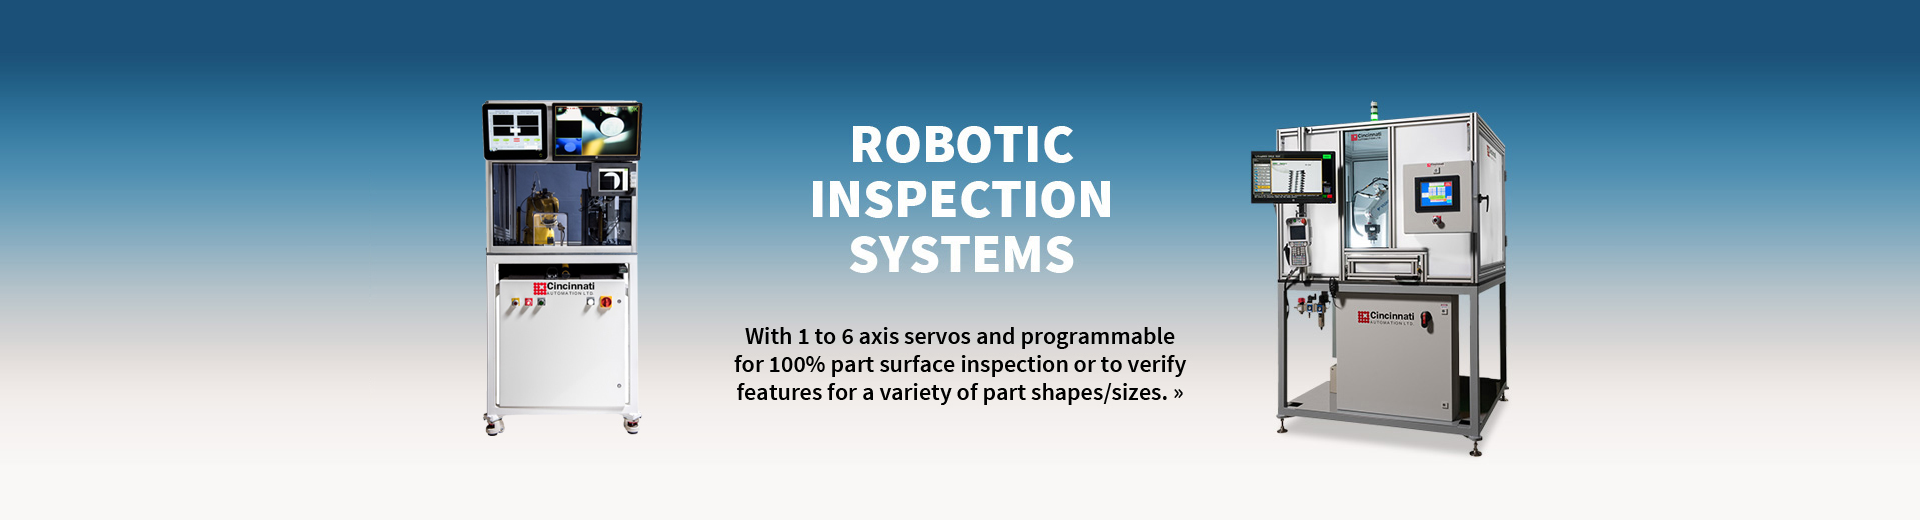 Robotic Inspection Systems